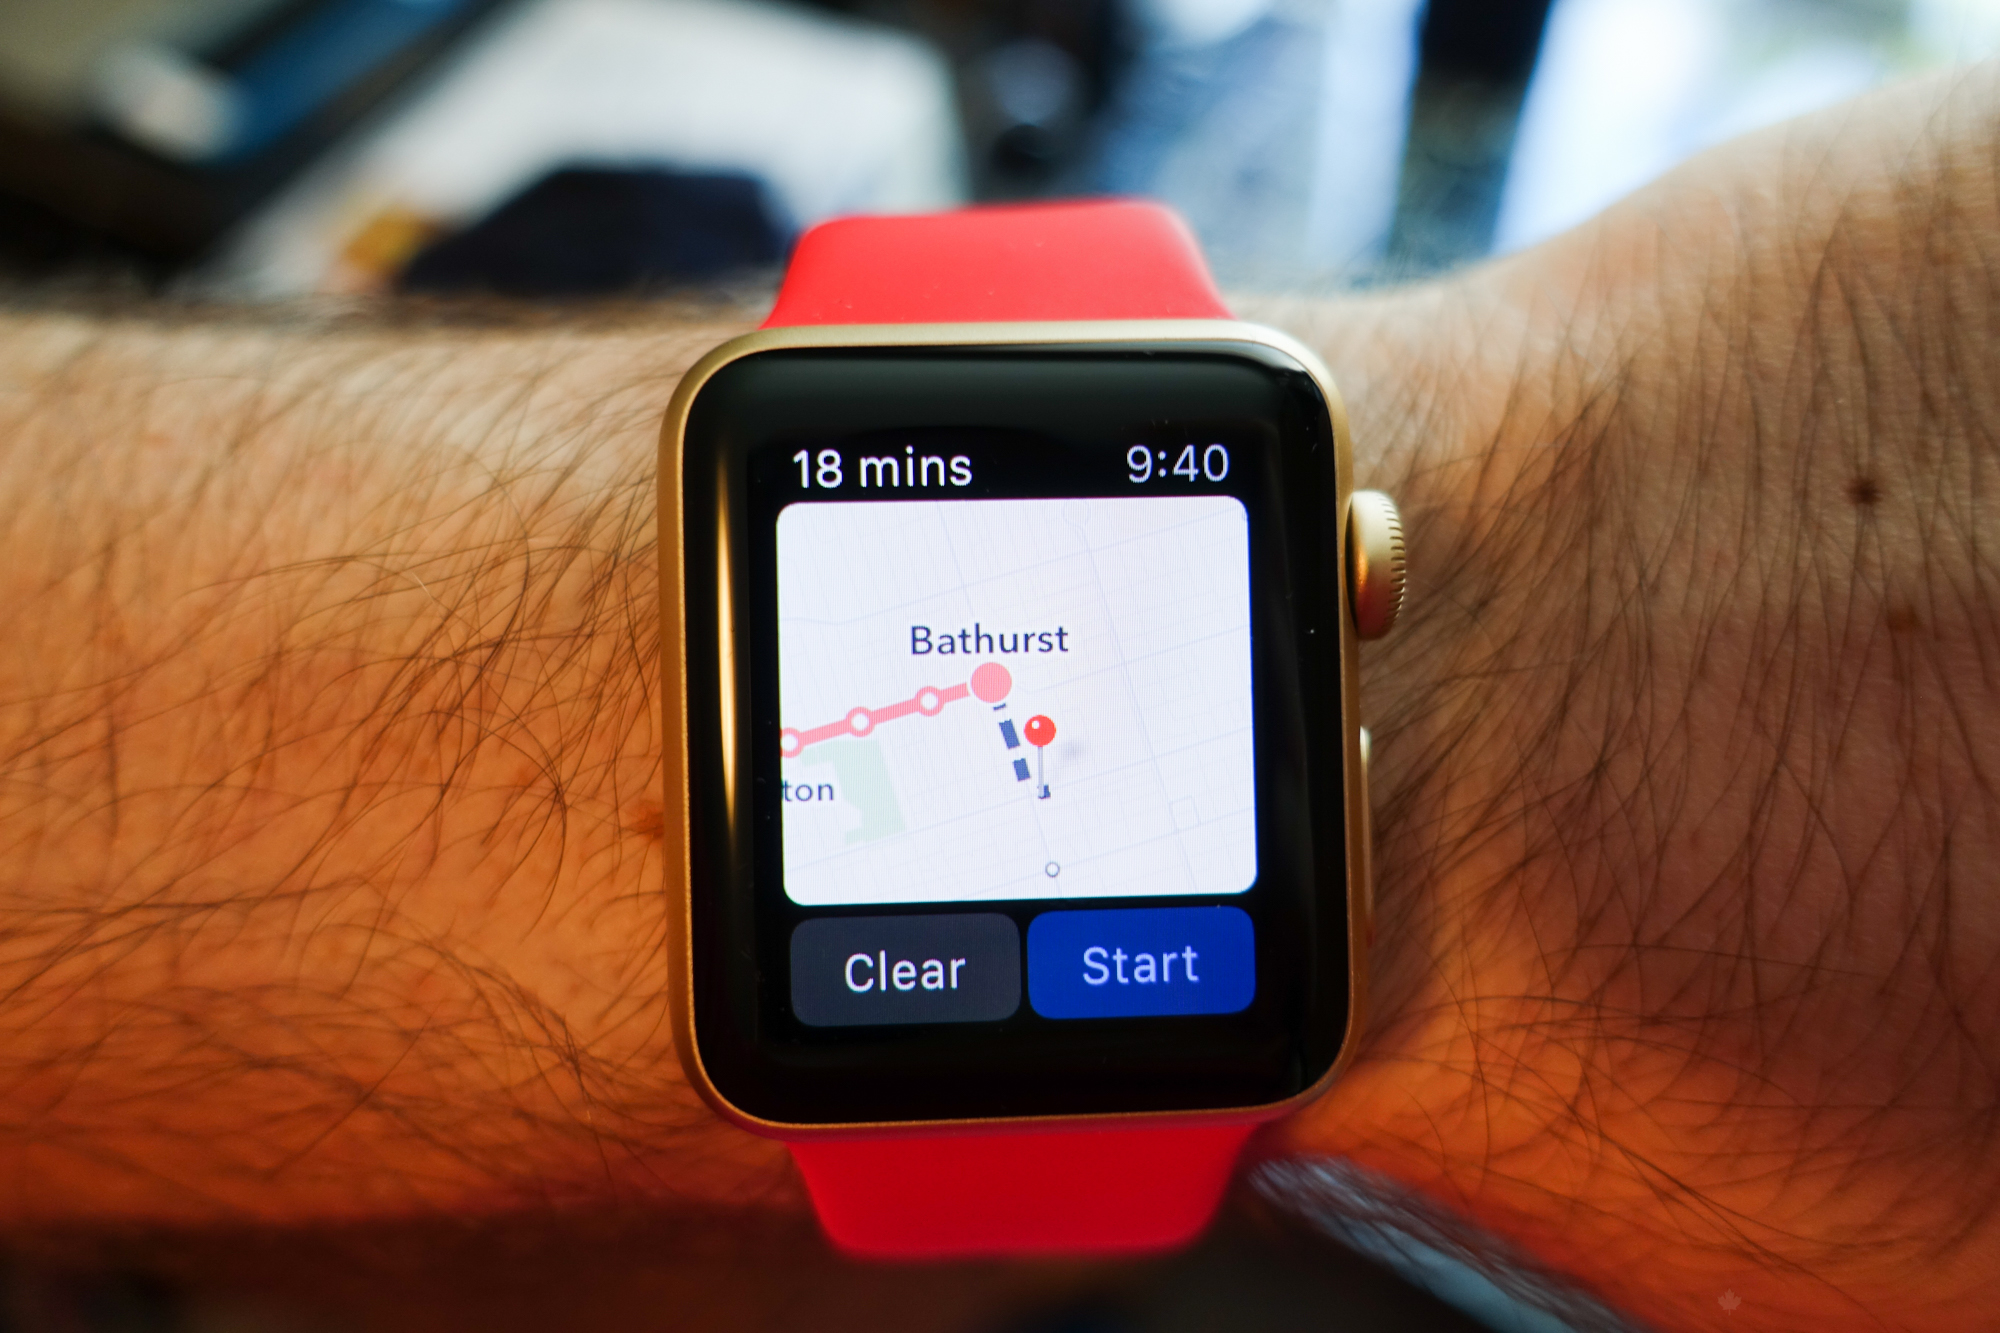 applewatchos2review-01232